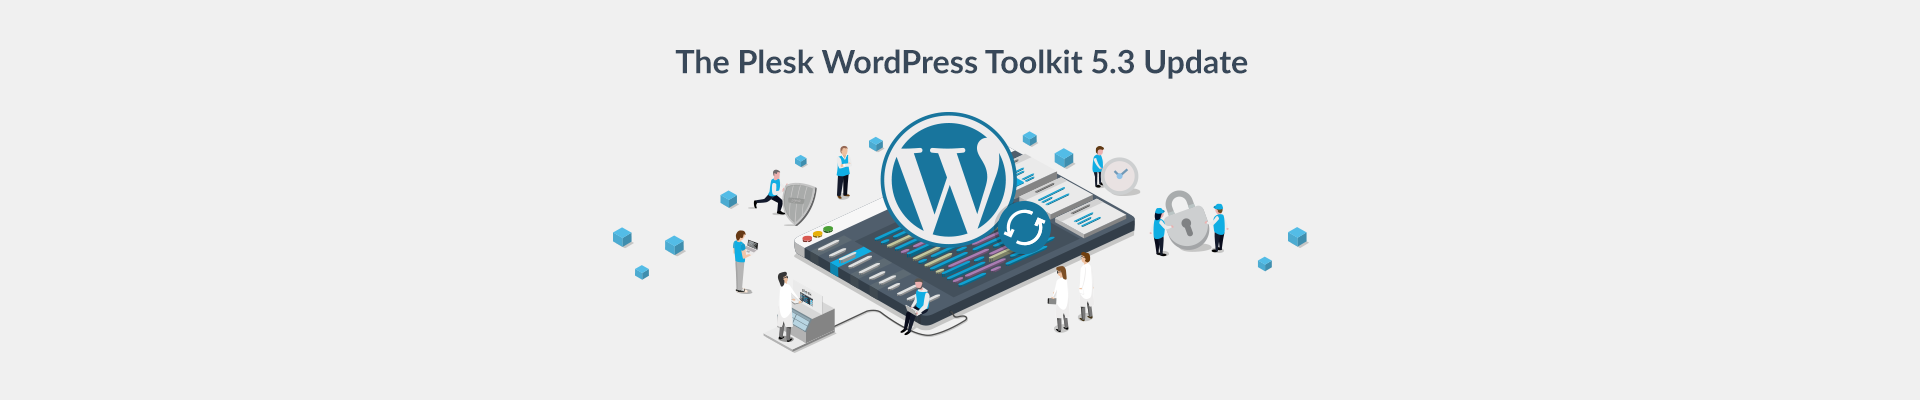 WordPress Toolkit update 5.3 blog Plesk Header